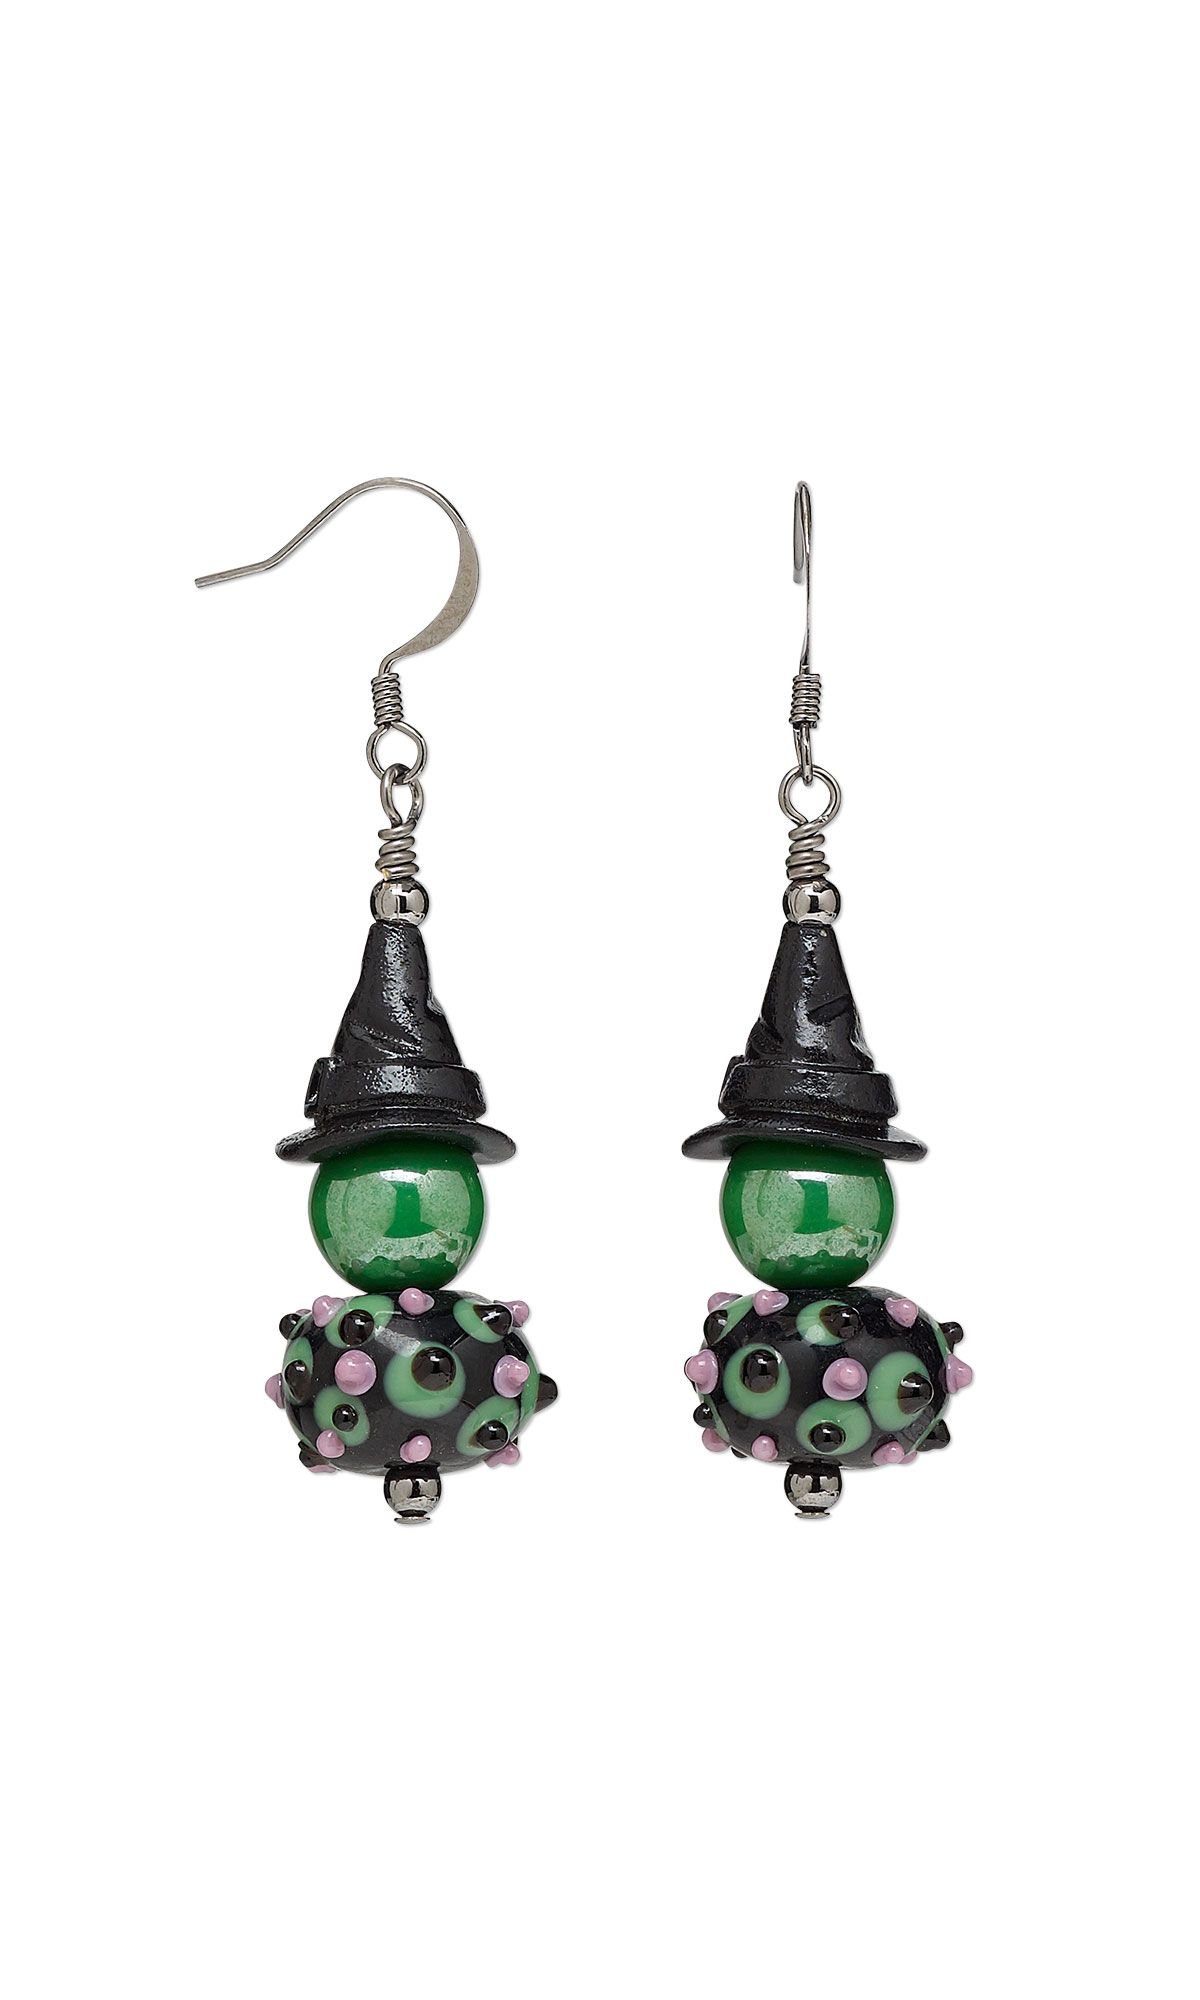 jewelry design earrings with lampworked glass beads enamel and